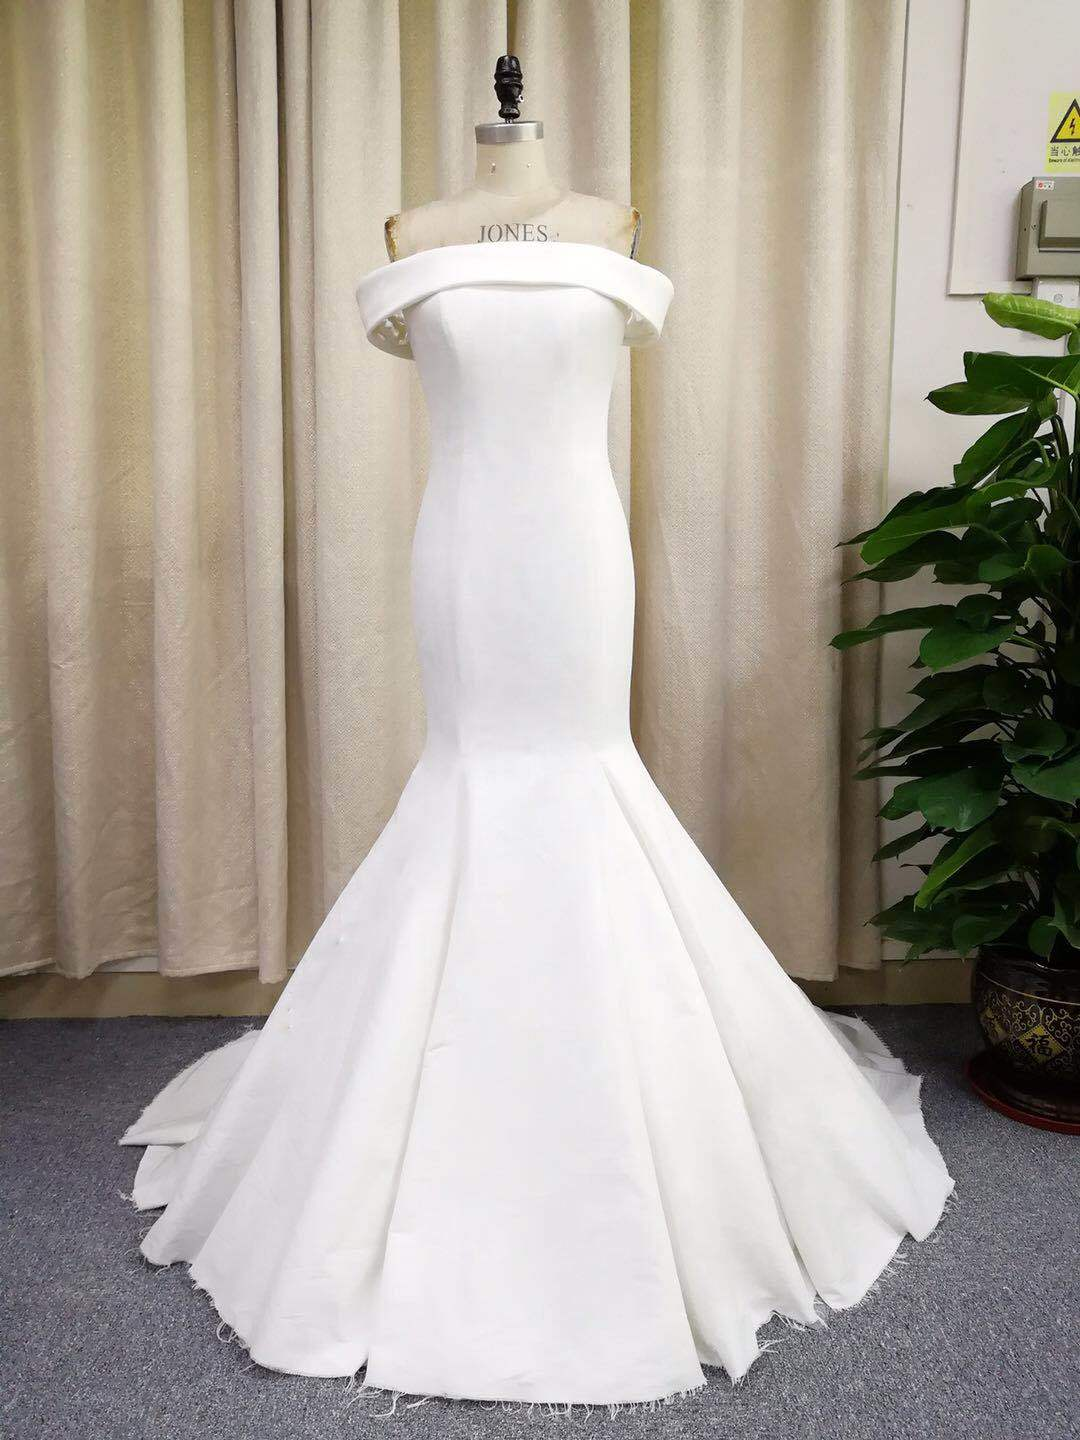 Wedding Dress Production in front